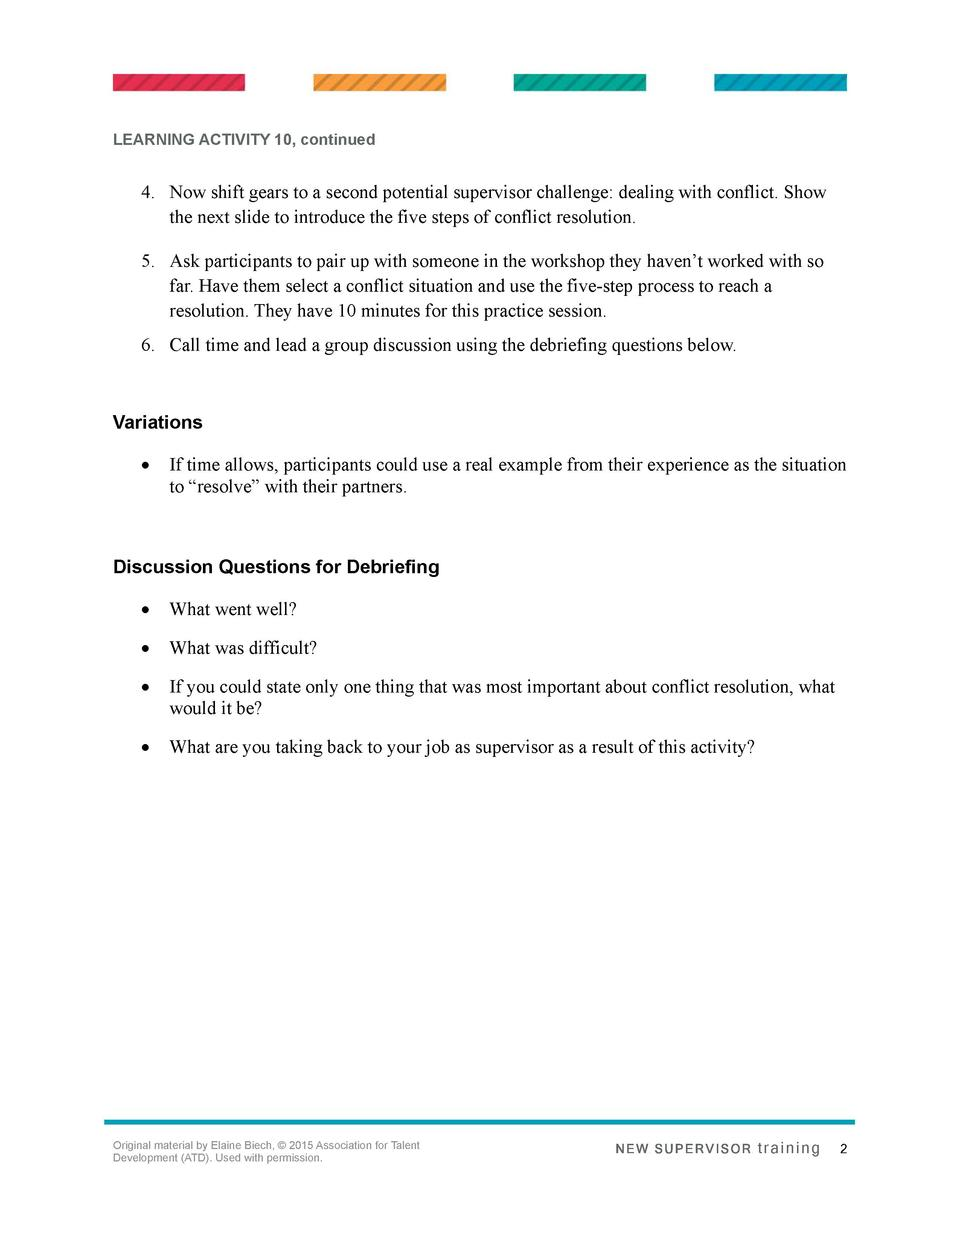 LEARNING ACTIVITY 10, continued  4. Now shift gears to a second potential supervisor challenge  dealing with conflict. Sho...